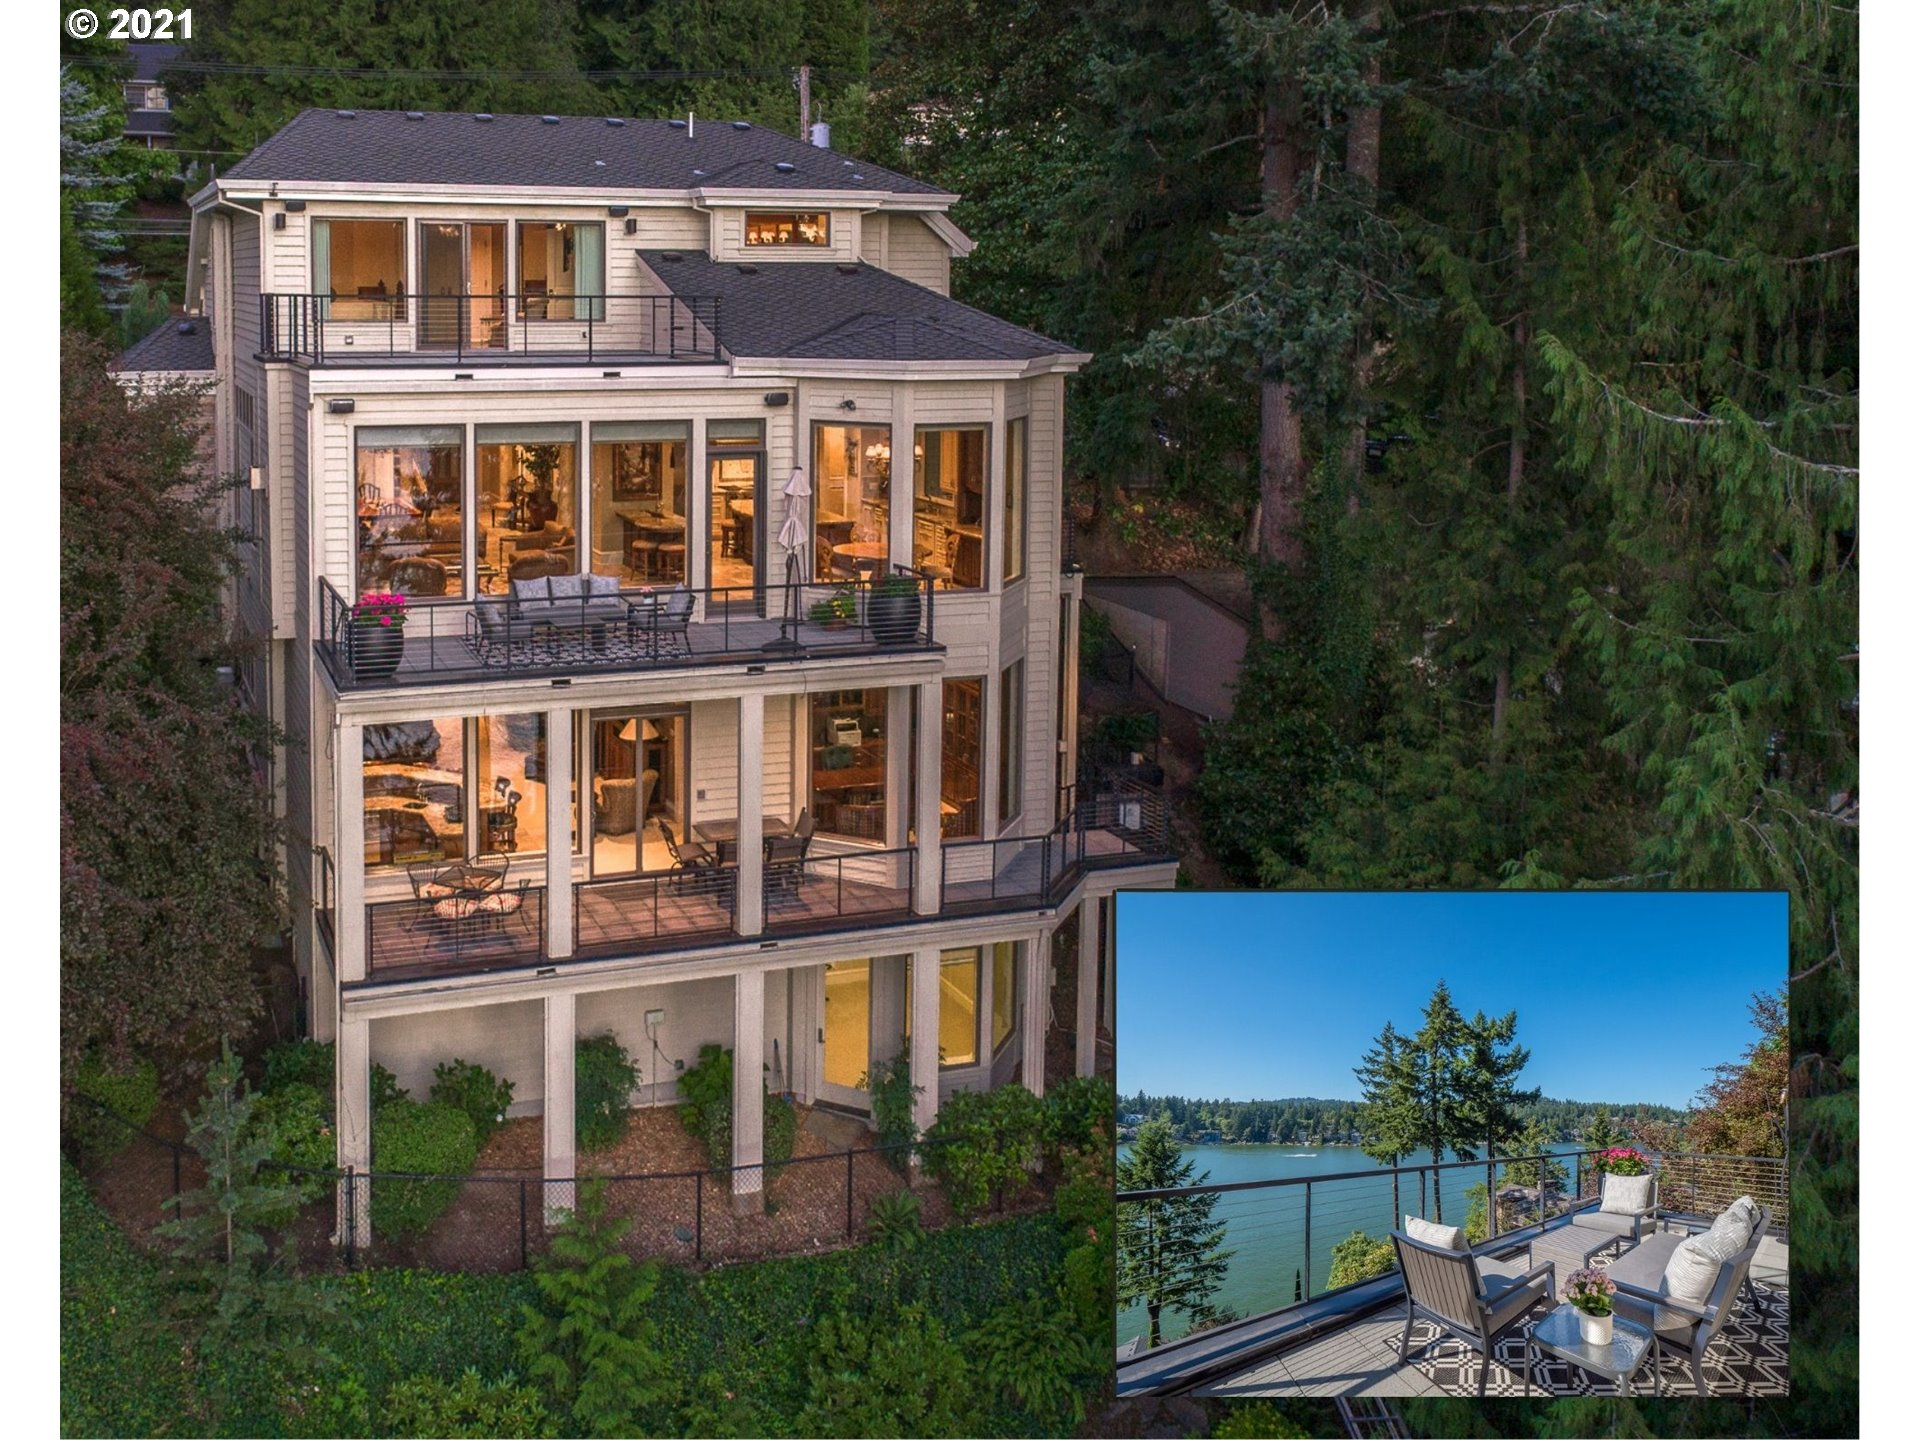 Cinematic Oswego Lake views from all 4 levels & spectacular decks create an absolute haven in this idyllic main lake location! This custom crafted retreat offers a private tram to boathouse w/lift, breathtaking high ceilings & floor to ceiling windows that showcase the water views. A gorgeous great rm gourmet kitchen w/dining decks & entertainer's family rm w/deck & full bar are ready to welcome guests. Dive off your private dock & into coveted lake water sports; minutes to vibrant LO amenities!